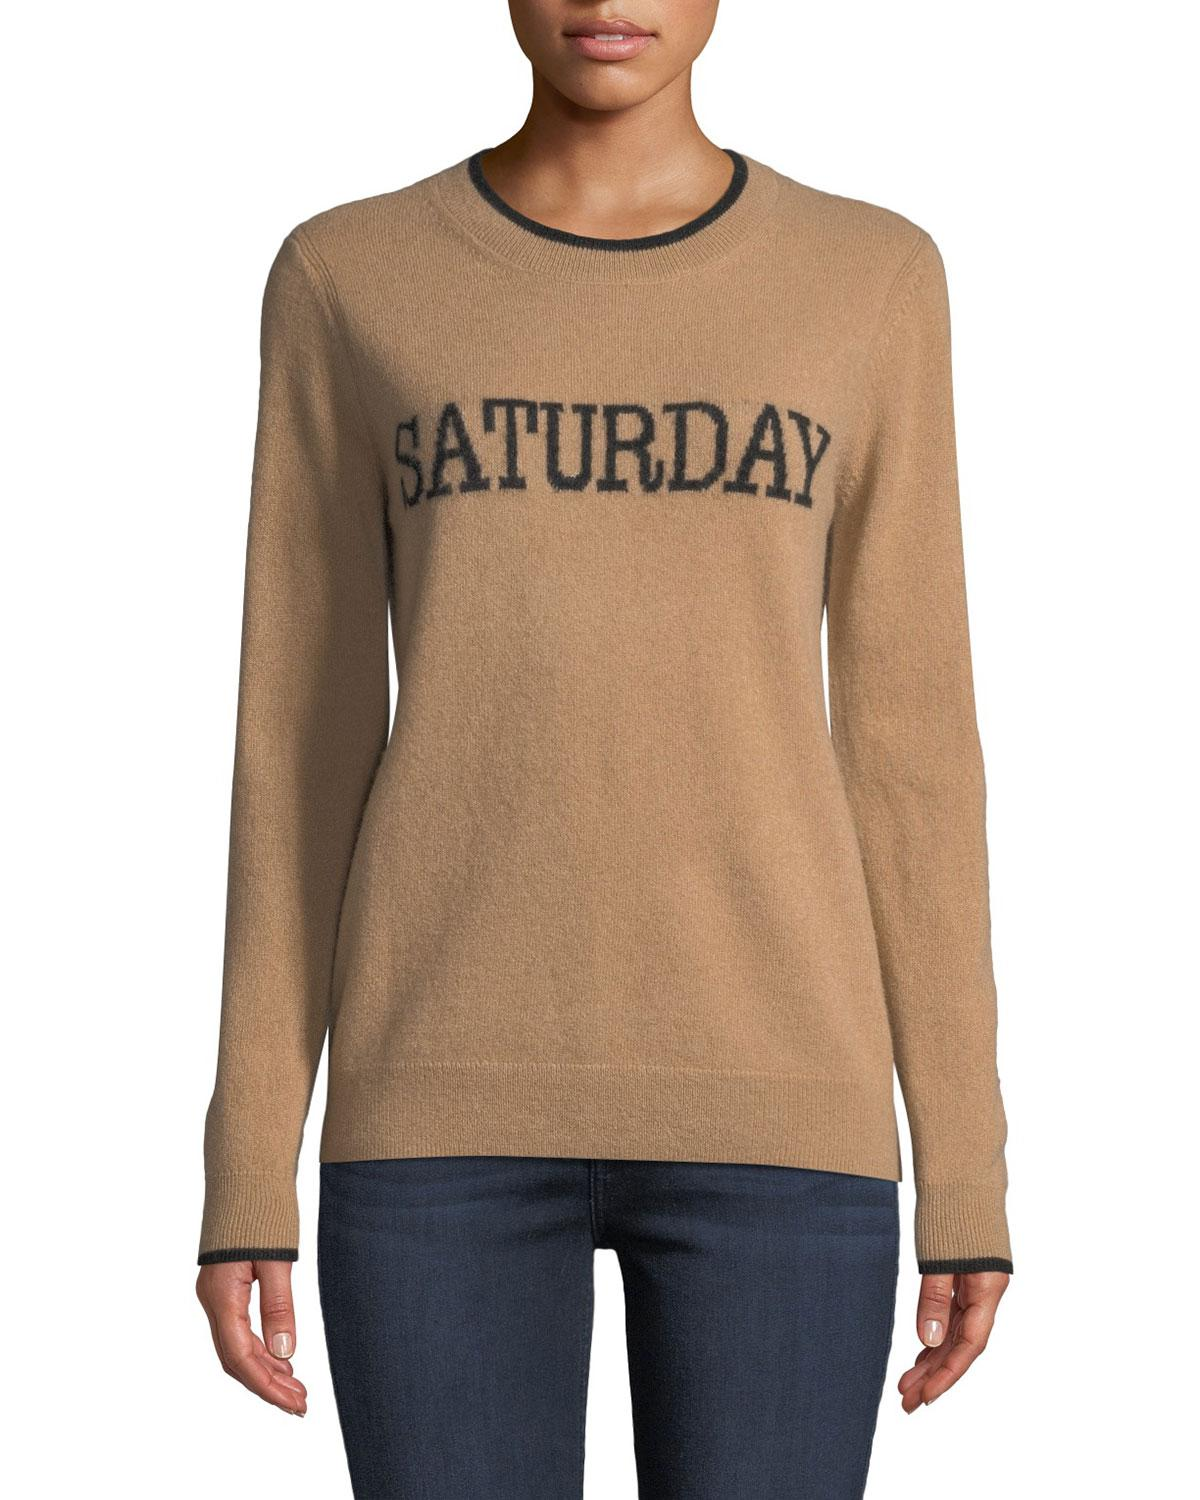 cb741cd16319 Lyst - Neiman Marcus Cashmere Saturday Pullover Sweater in Natural